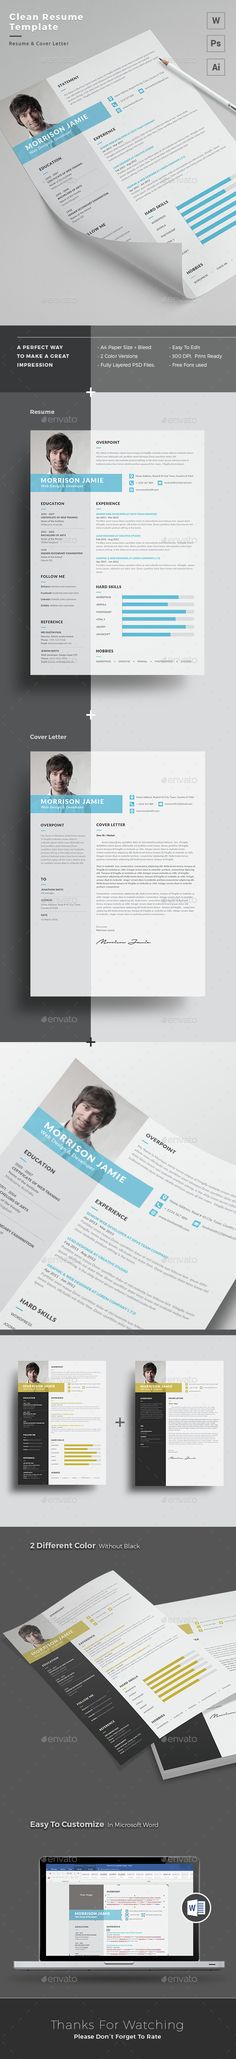 Resume Template PSD, Vector AI. Download here: http://graphicriver.net/item/resume/15355494?ref=ksioks